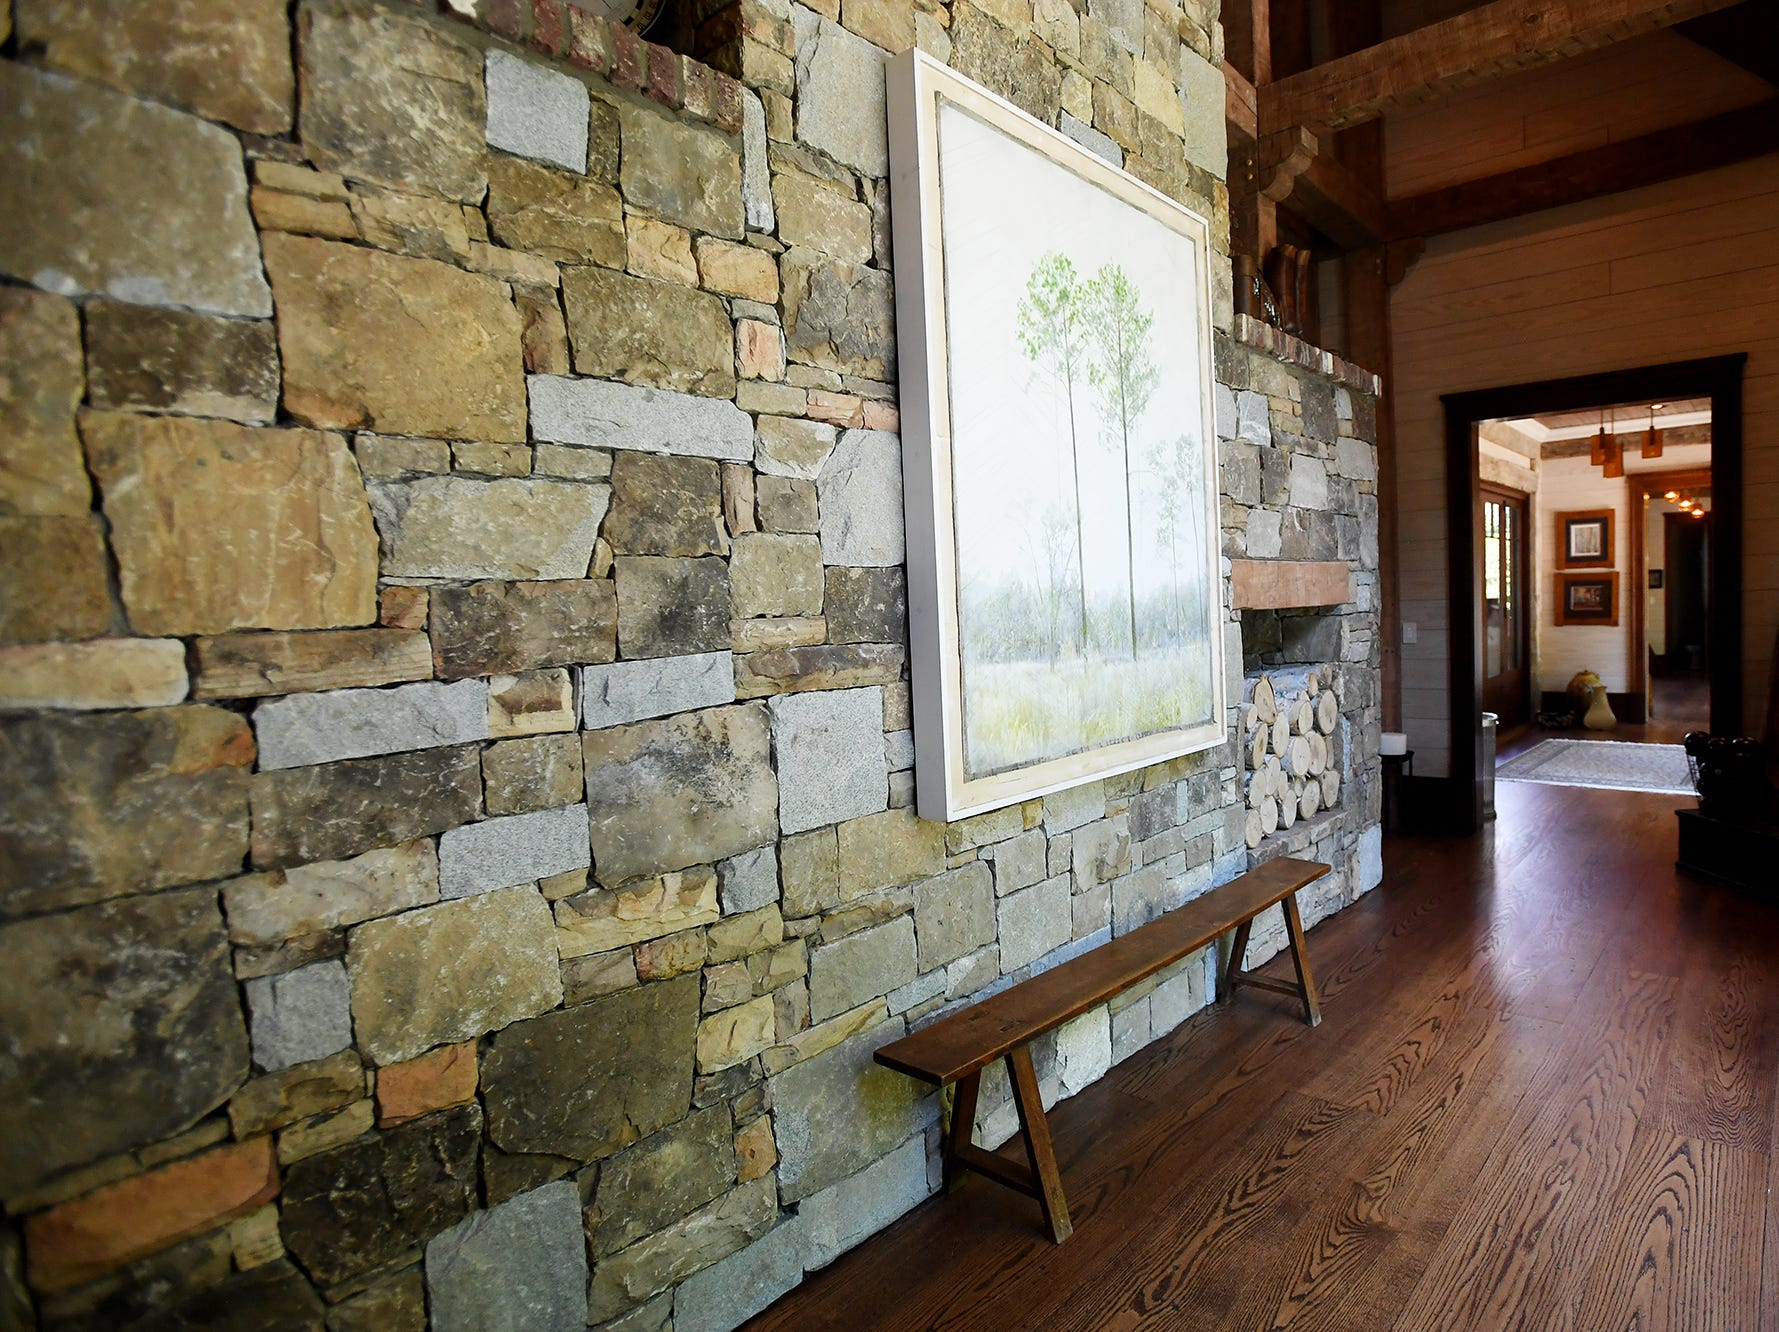 Inside the Balsam Mountain Preserve home of Bobbye and Ken Bowdon.